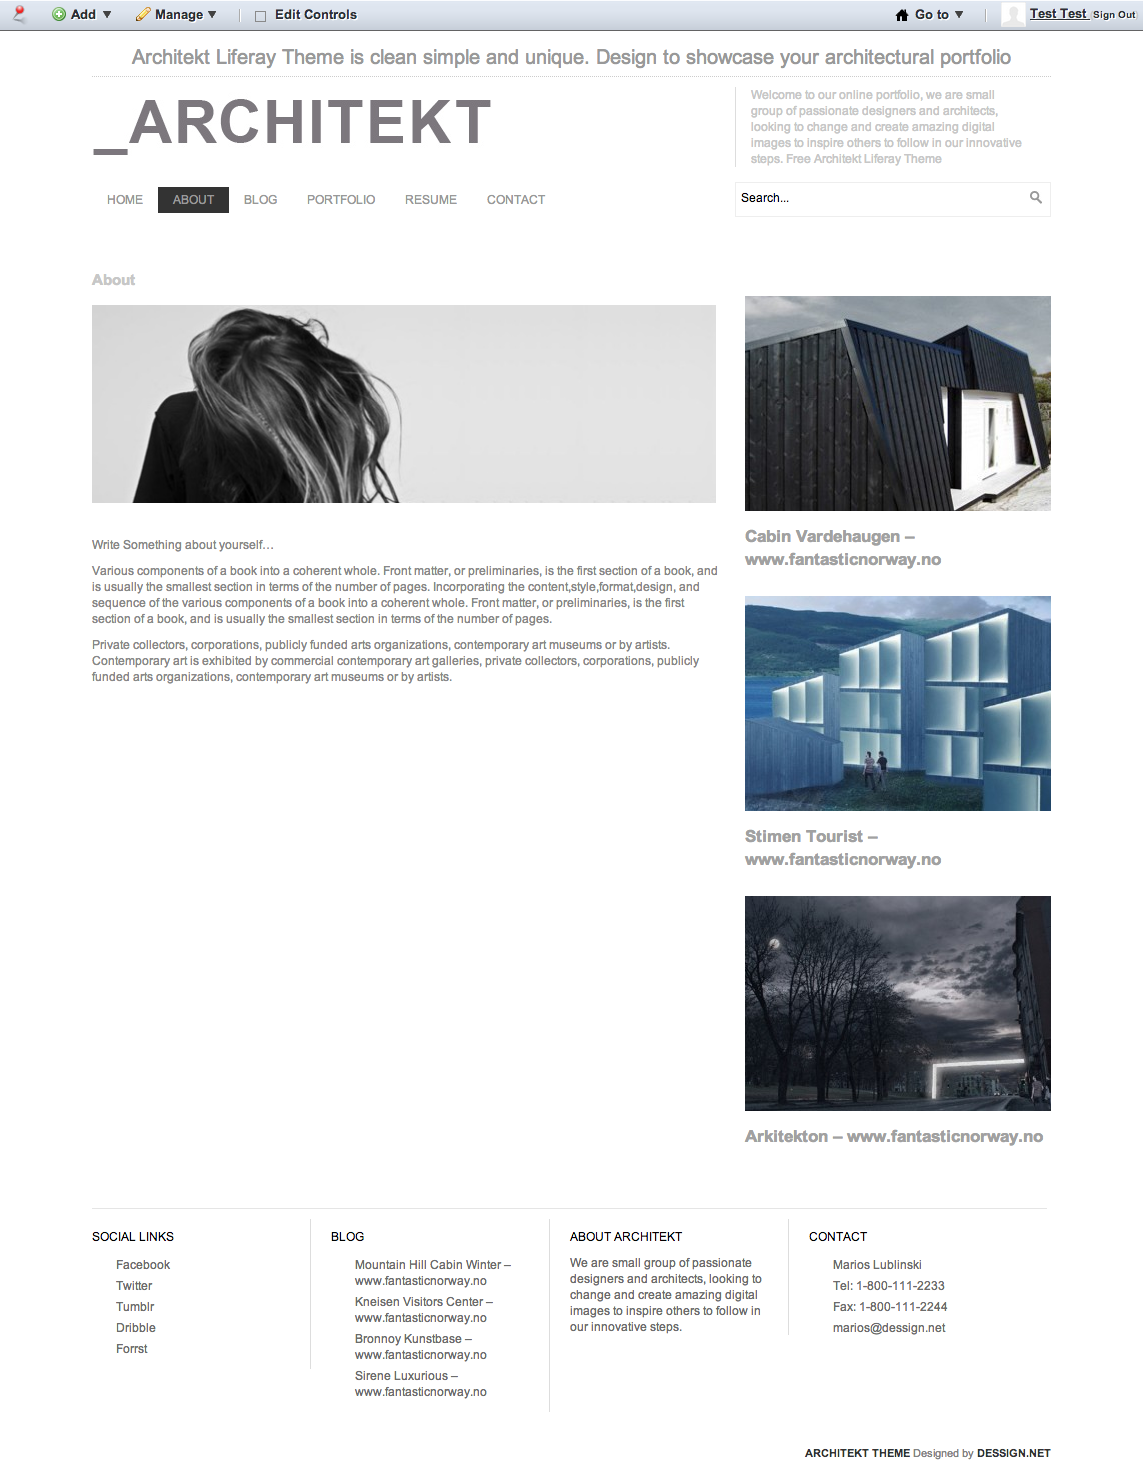 liferay templates free - woodbench media handcrafted websites and other front end